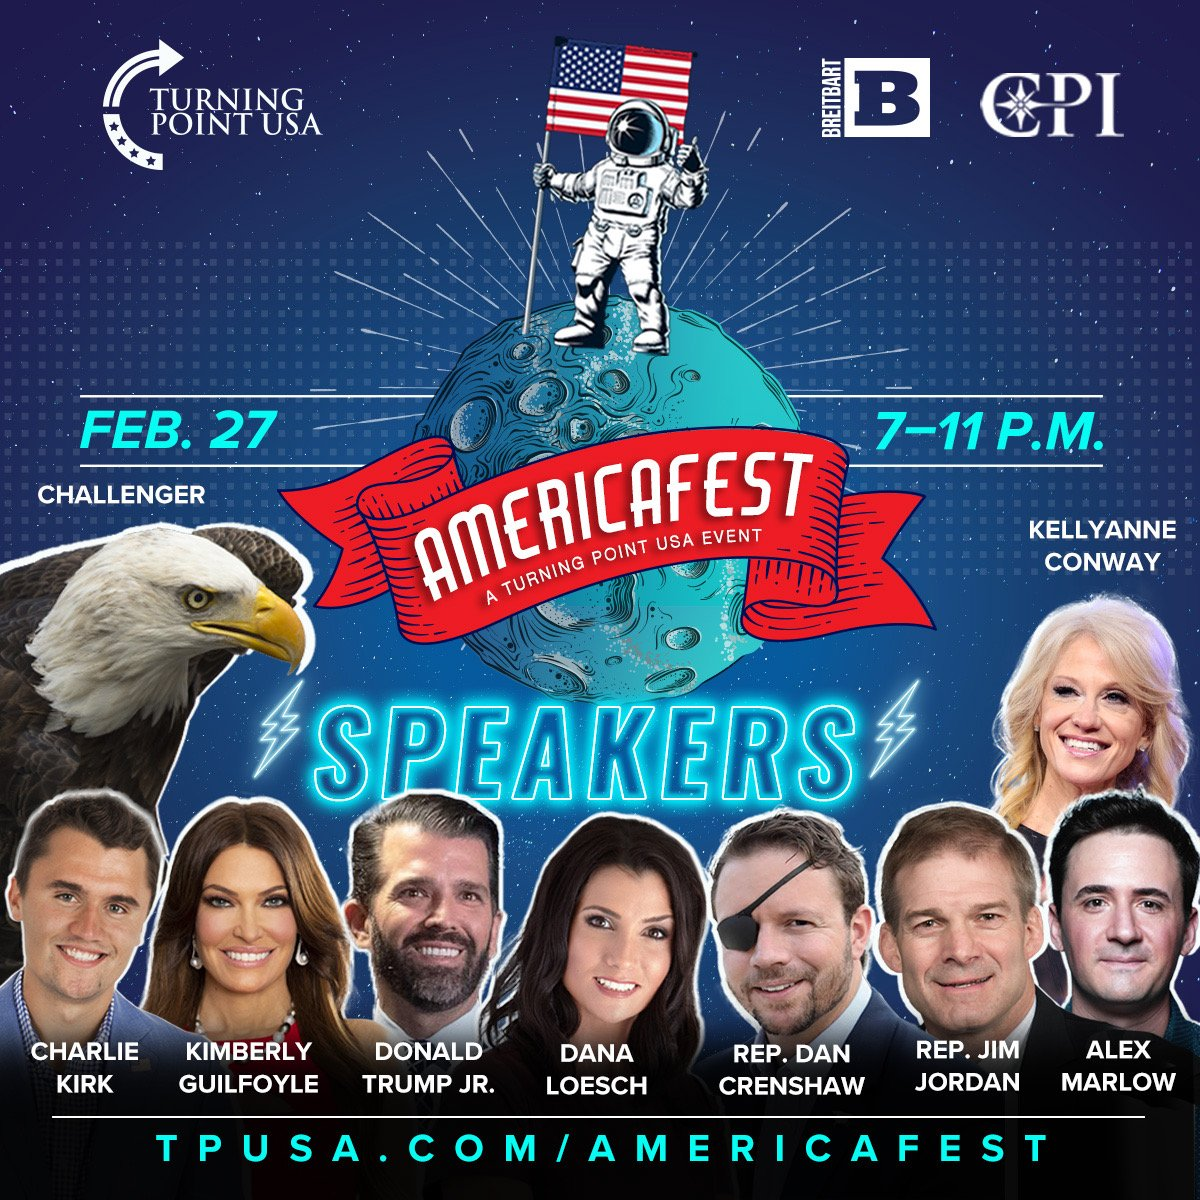 ONLY A FEW SPOTS LEFT To Attend The BIGGEST Party At CPAC! 🇺🇸  Join @TPUSA, @BreitbartNews, & @CPInst At Cadillac Ranch TONIGHT At 7 PM For AmericaFest Feat. Tons Of Special Guests, Including @charliekirk11 @DonaldJTrumpJr & More!  Get Your Tickets Now! 👉